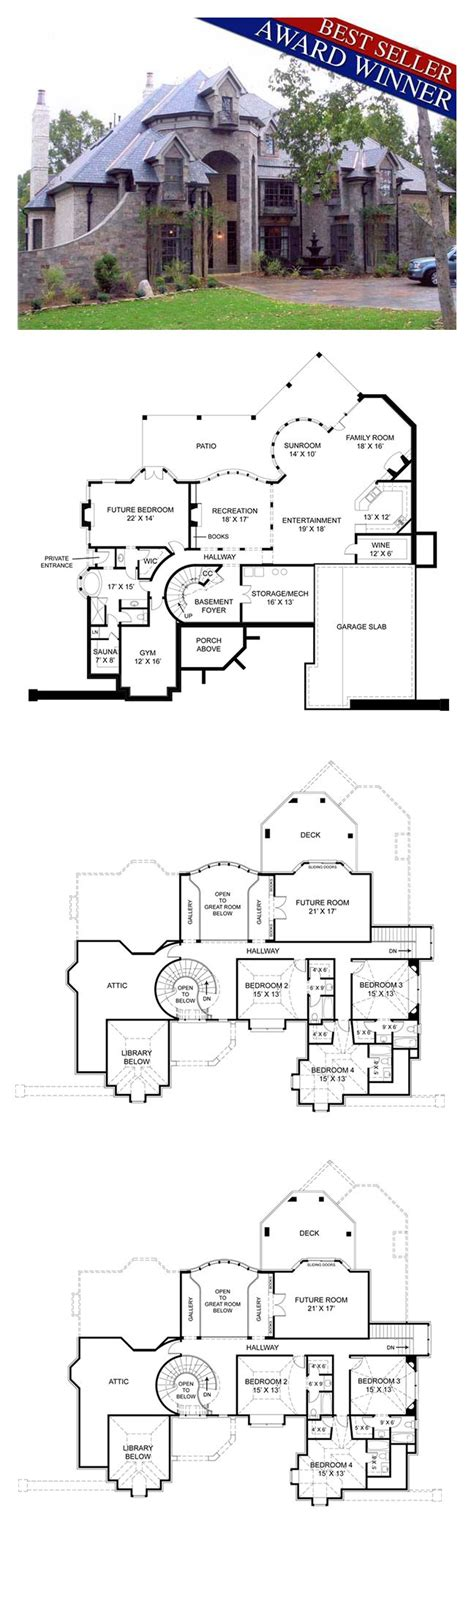 gothic tudor floor plans gothic tudor floor plans house pretentious mansion revival on home luxamcc